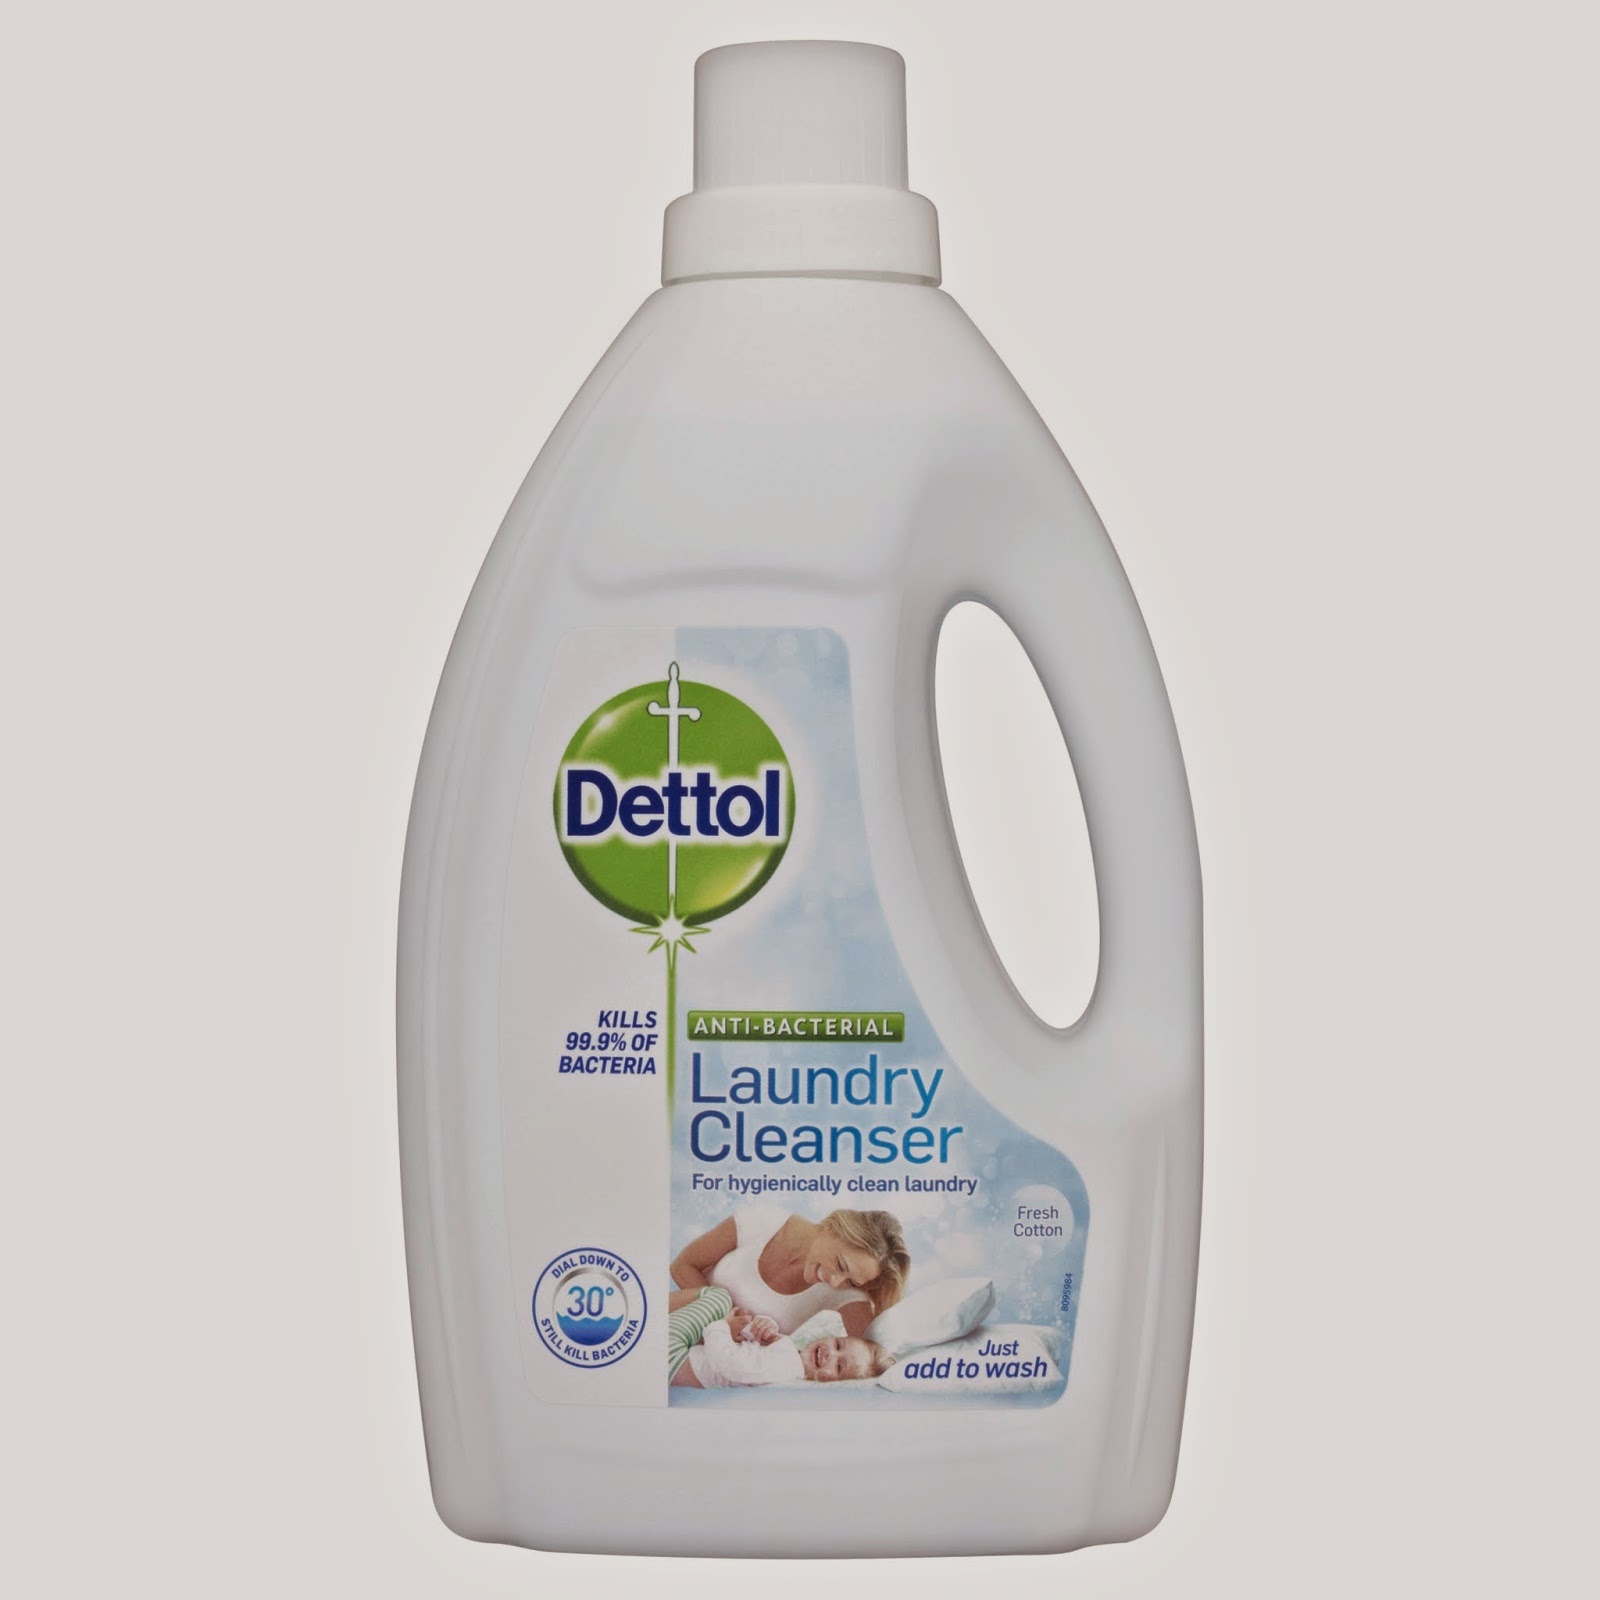 http://www.dettol.co.uk/